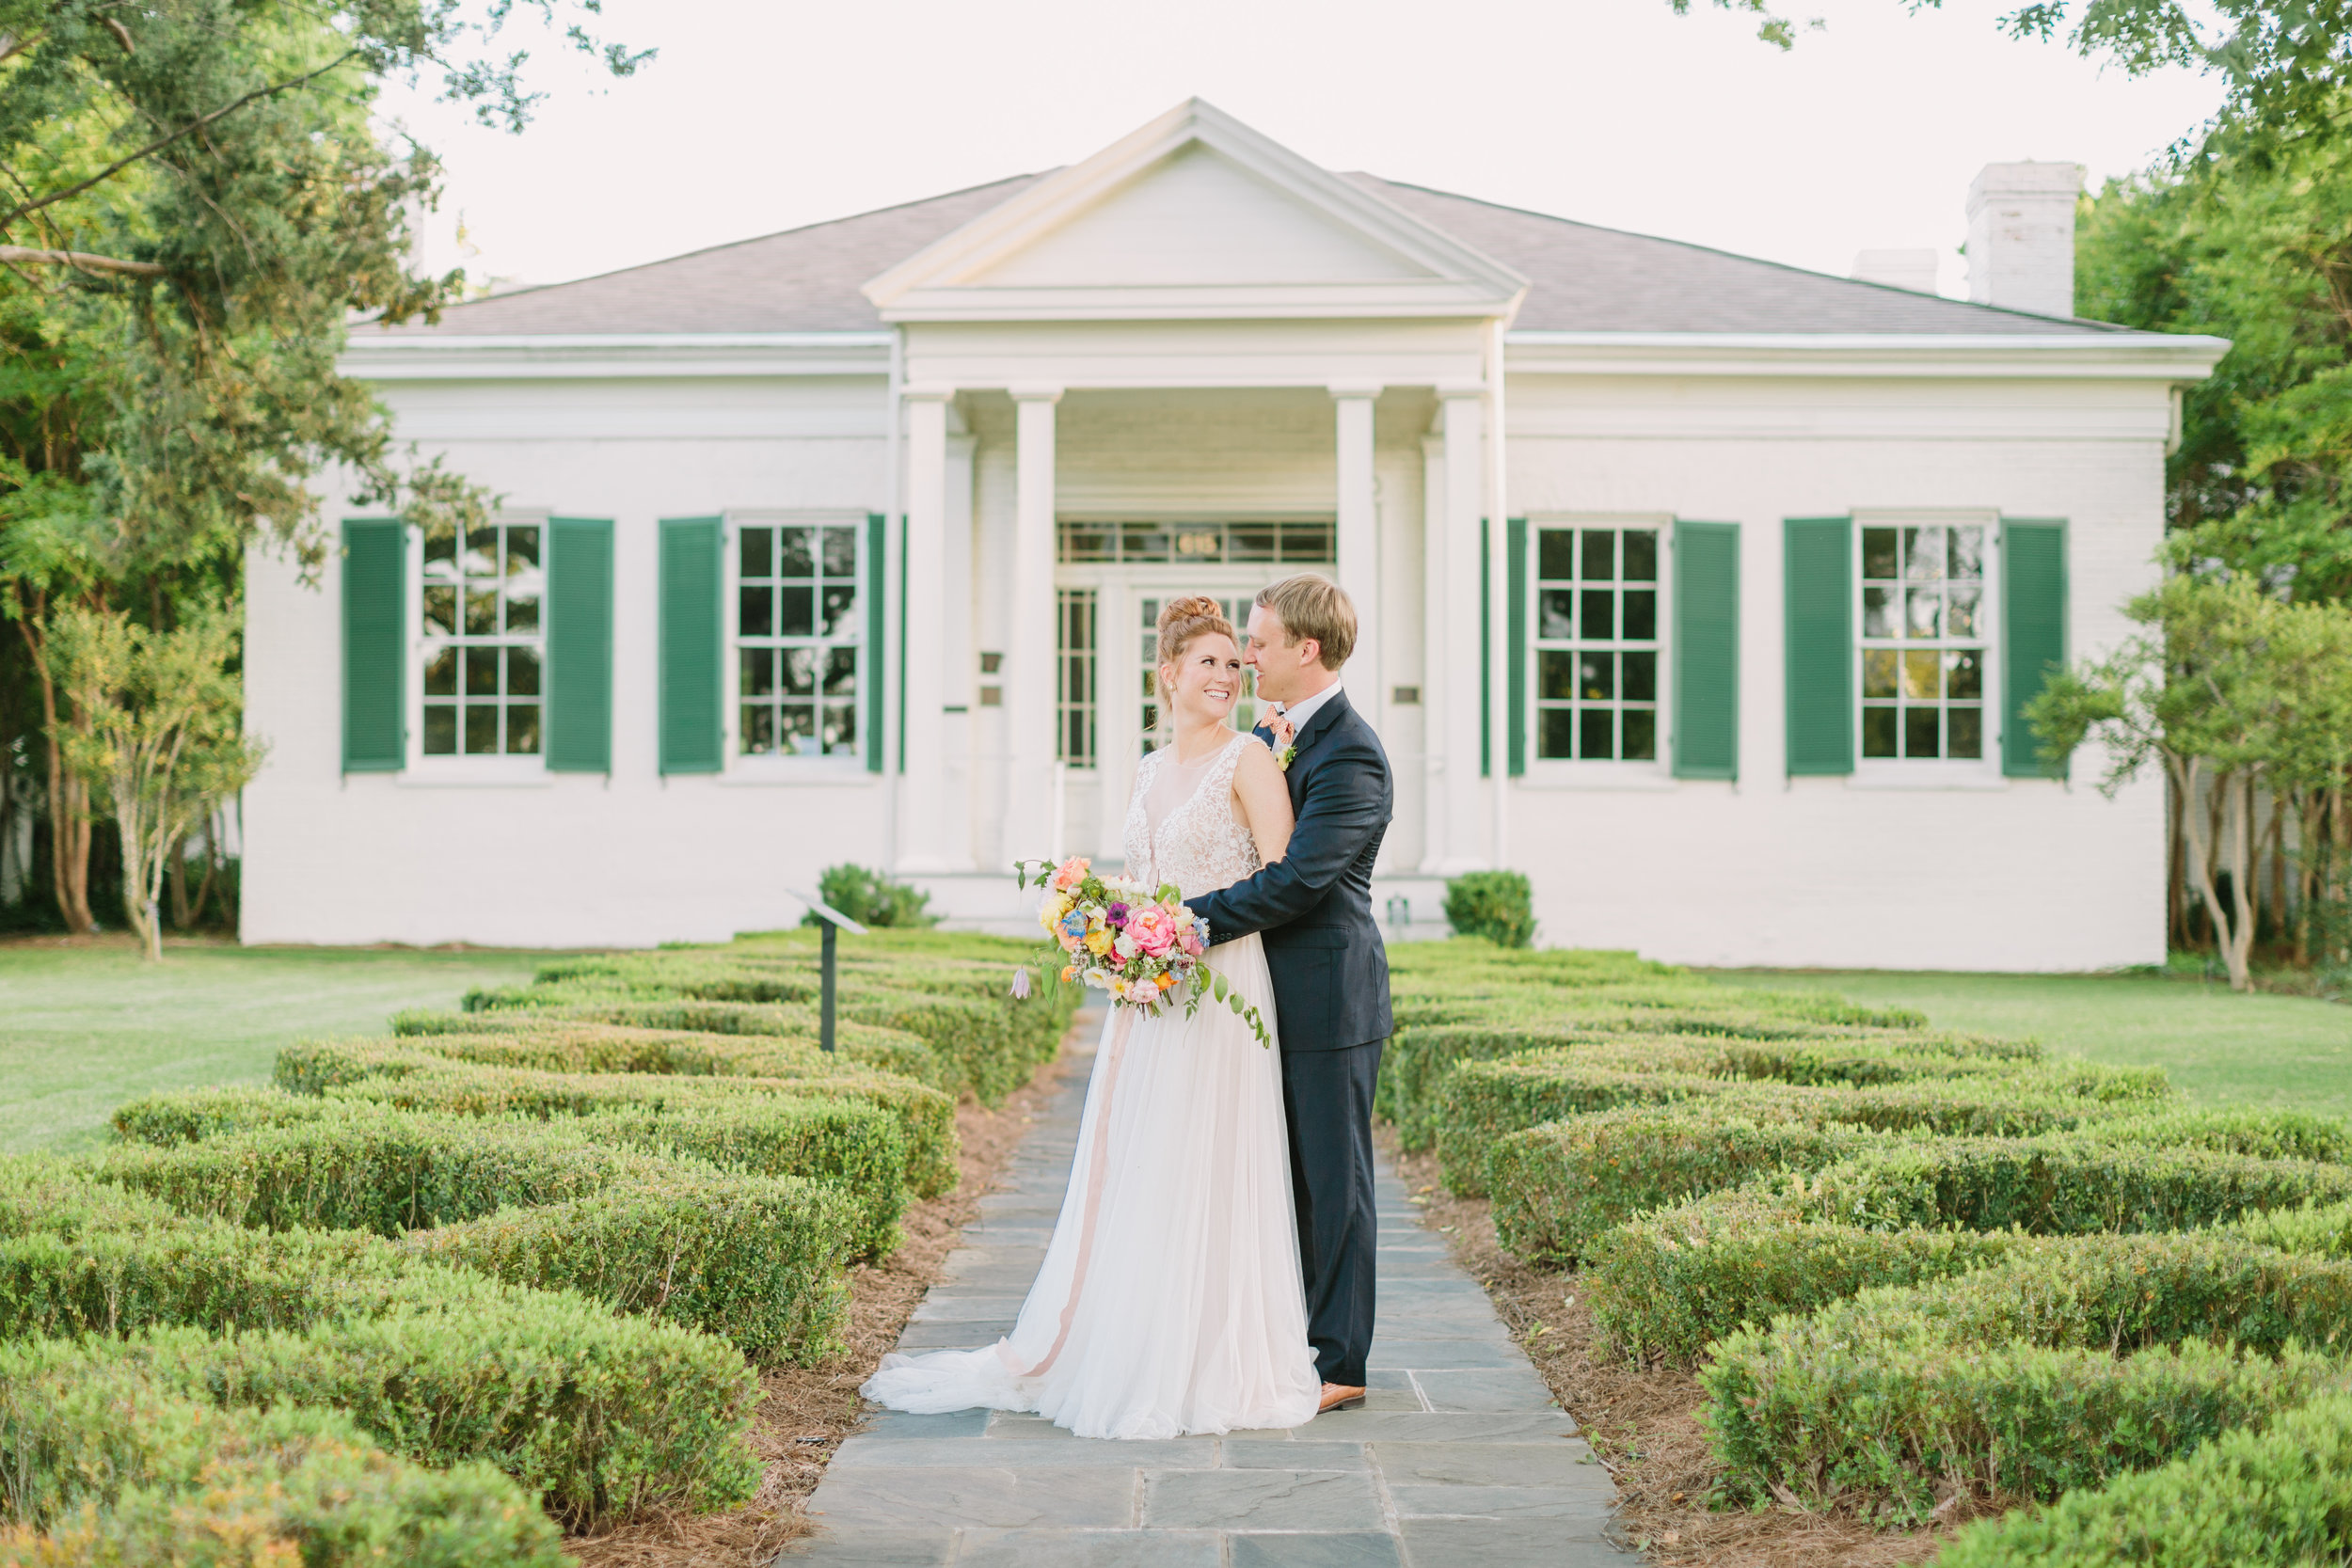 jessica-zimmerman-events-summer-wedding-colorful-venue.JPG